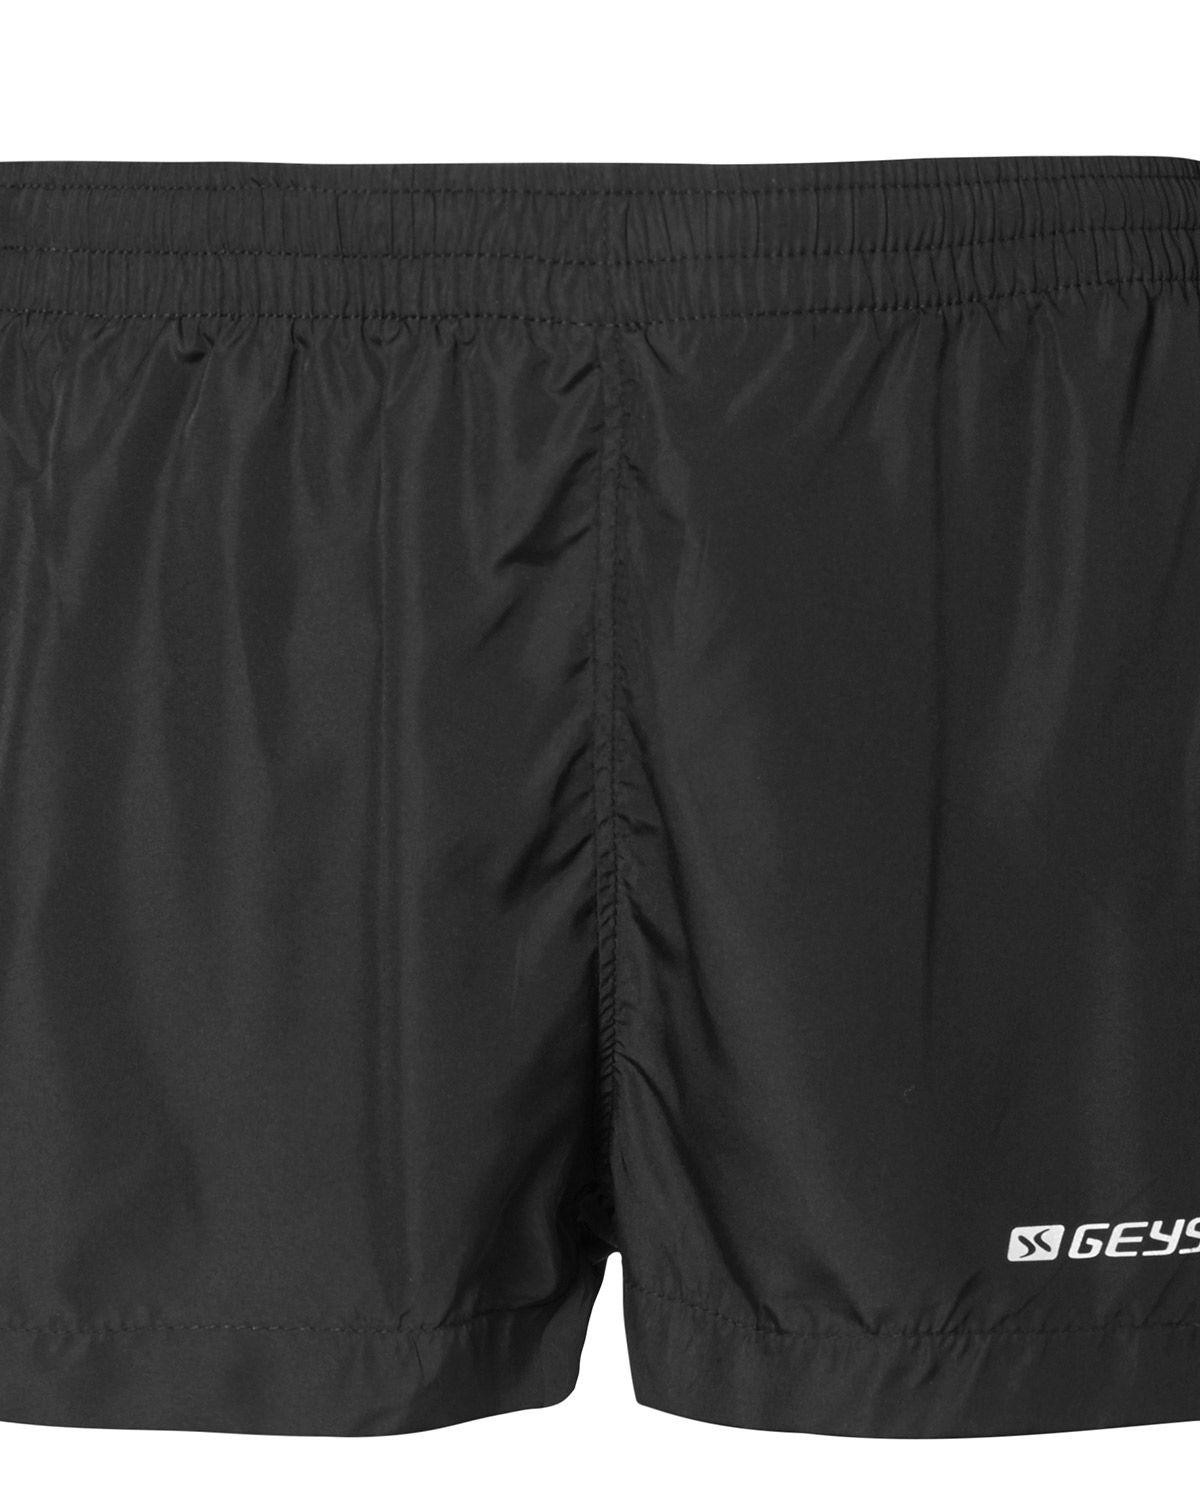 Image of   GEYSER Active Shorts til Herre (Sort, S)